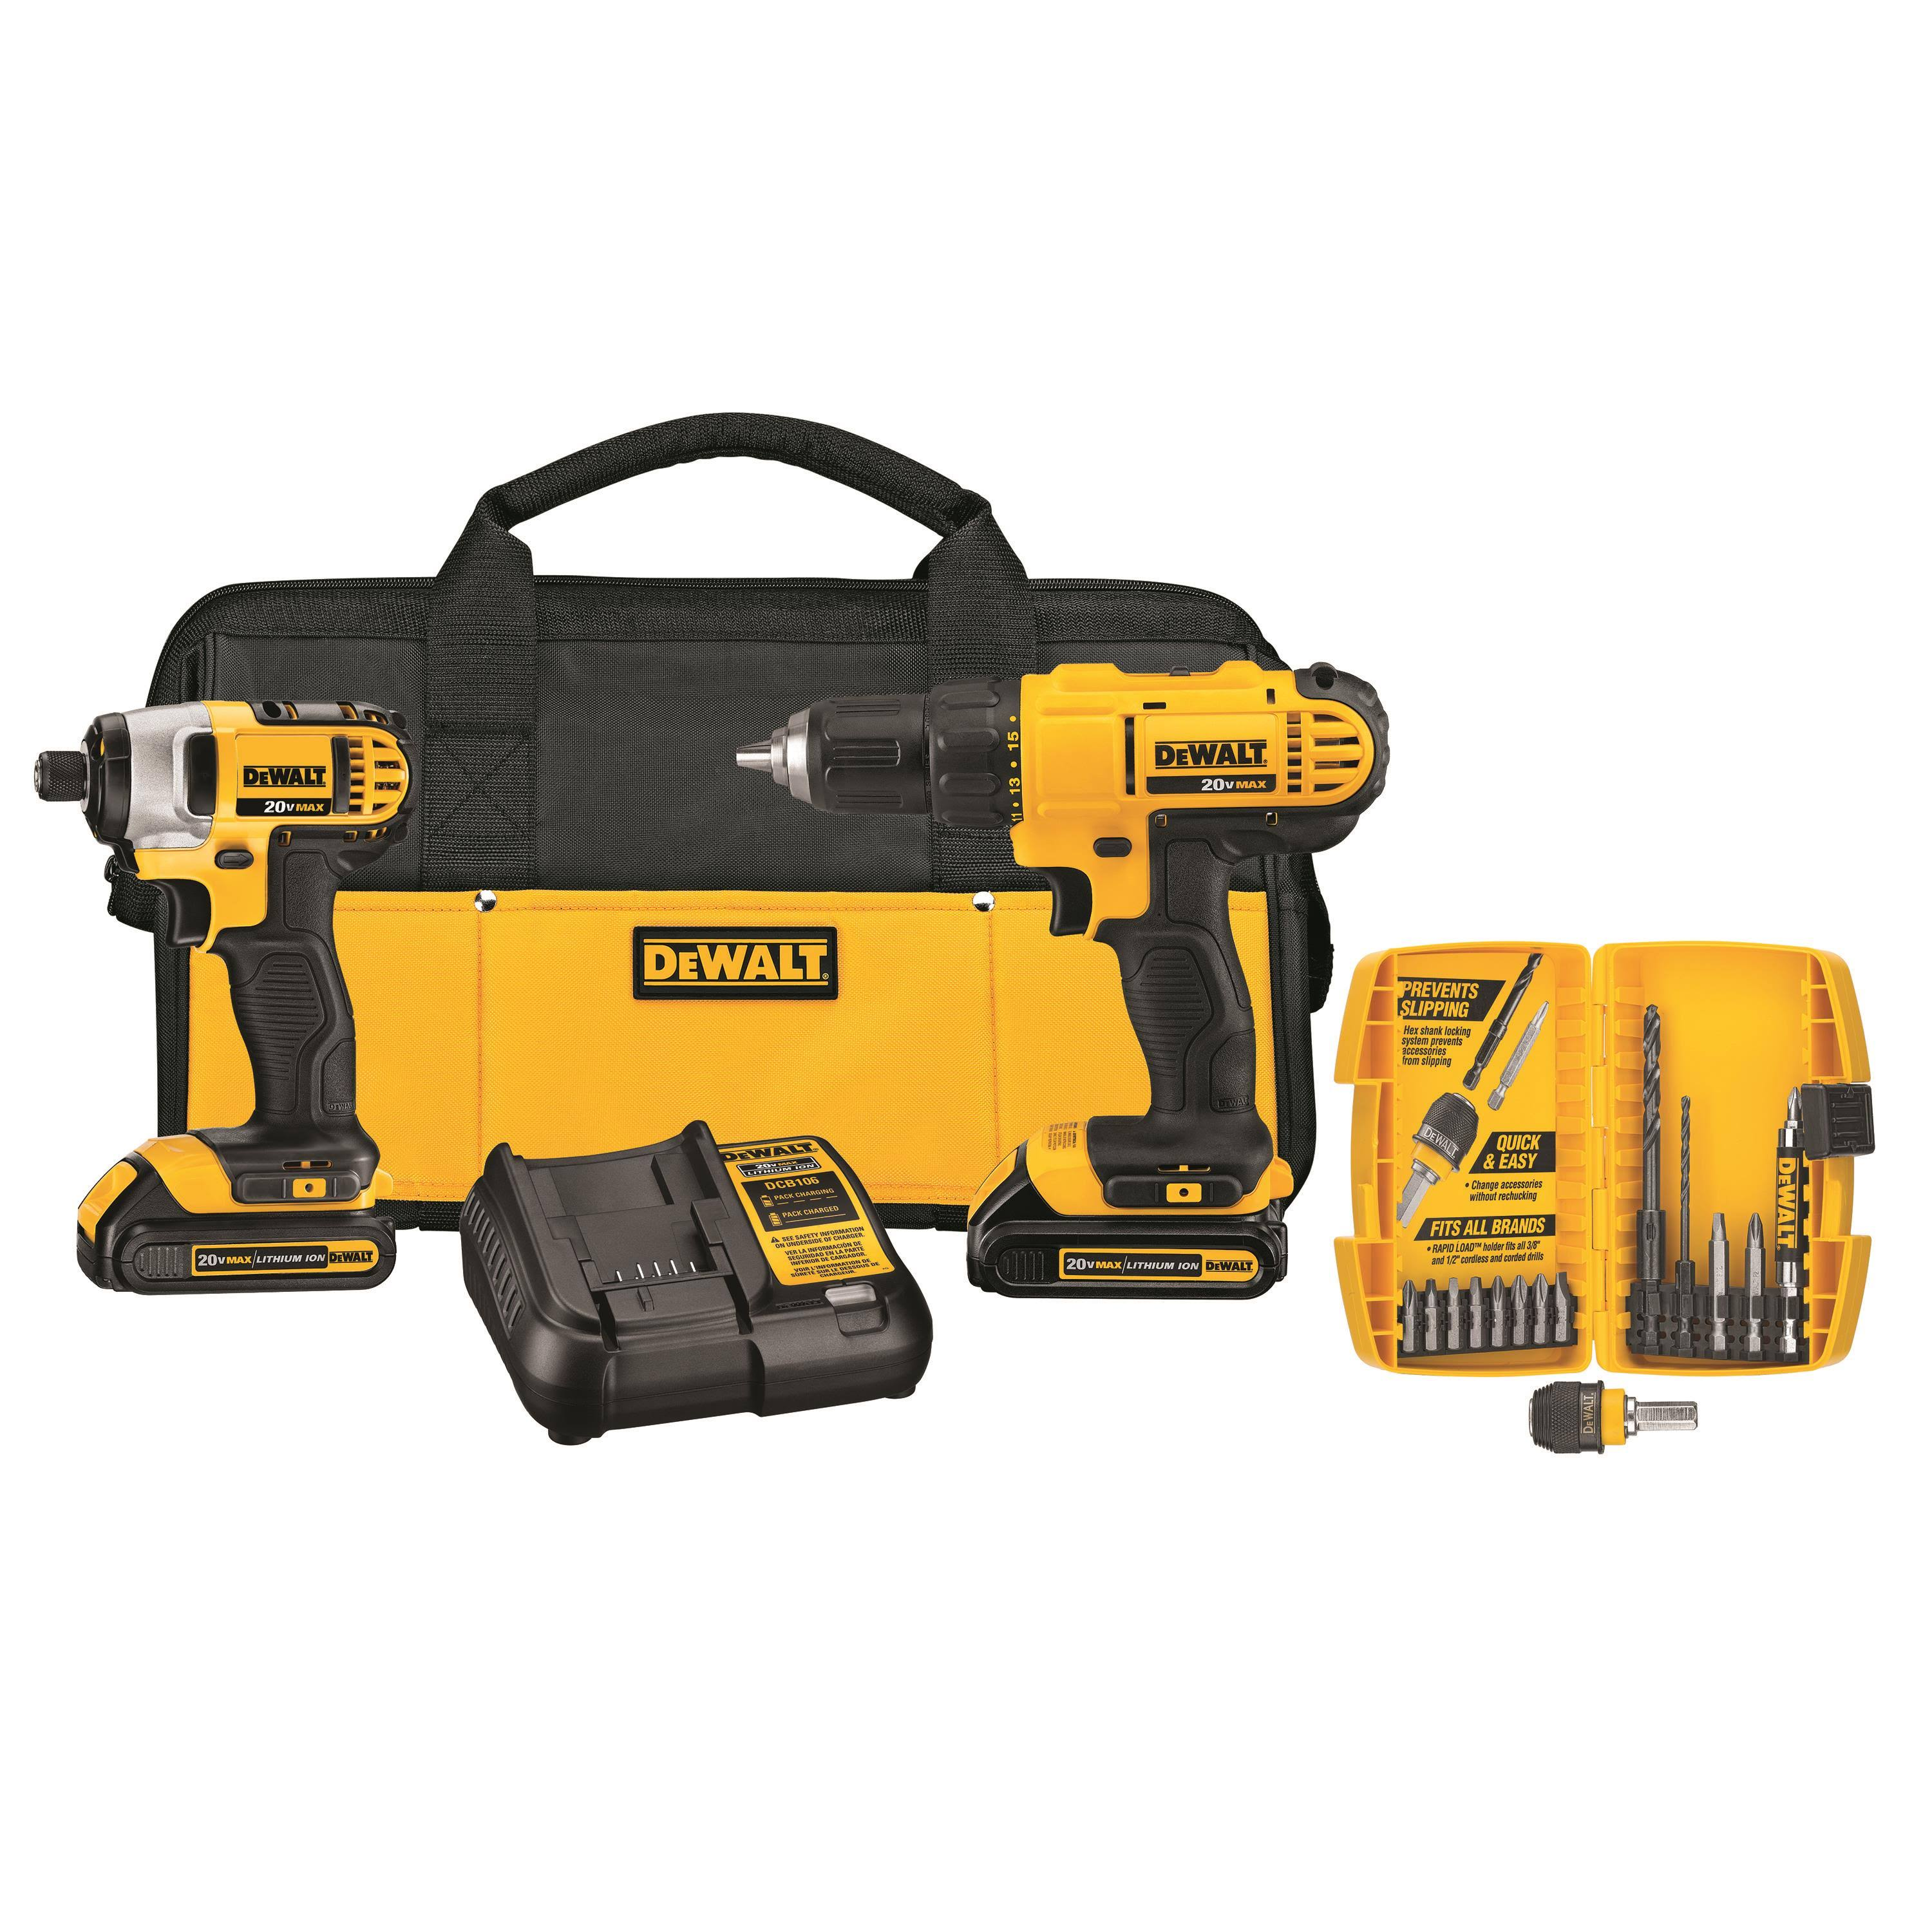 DeWalt Compact Driver and Impact Driver - Cordless, 20V